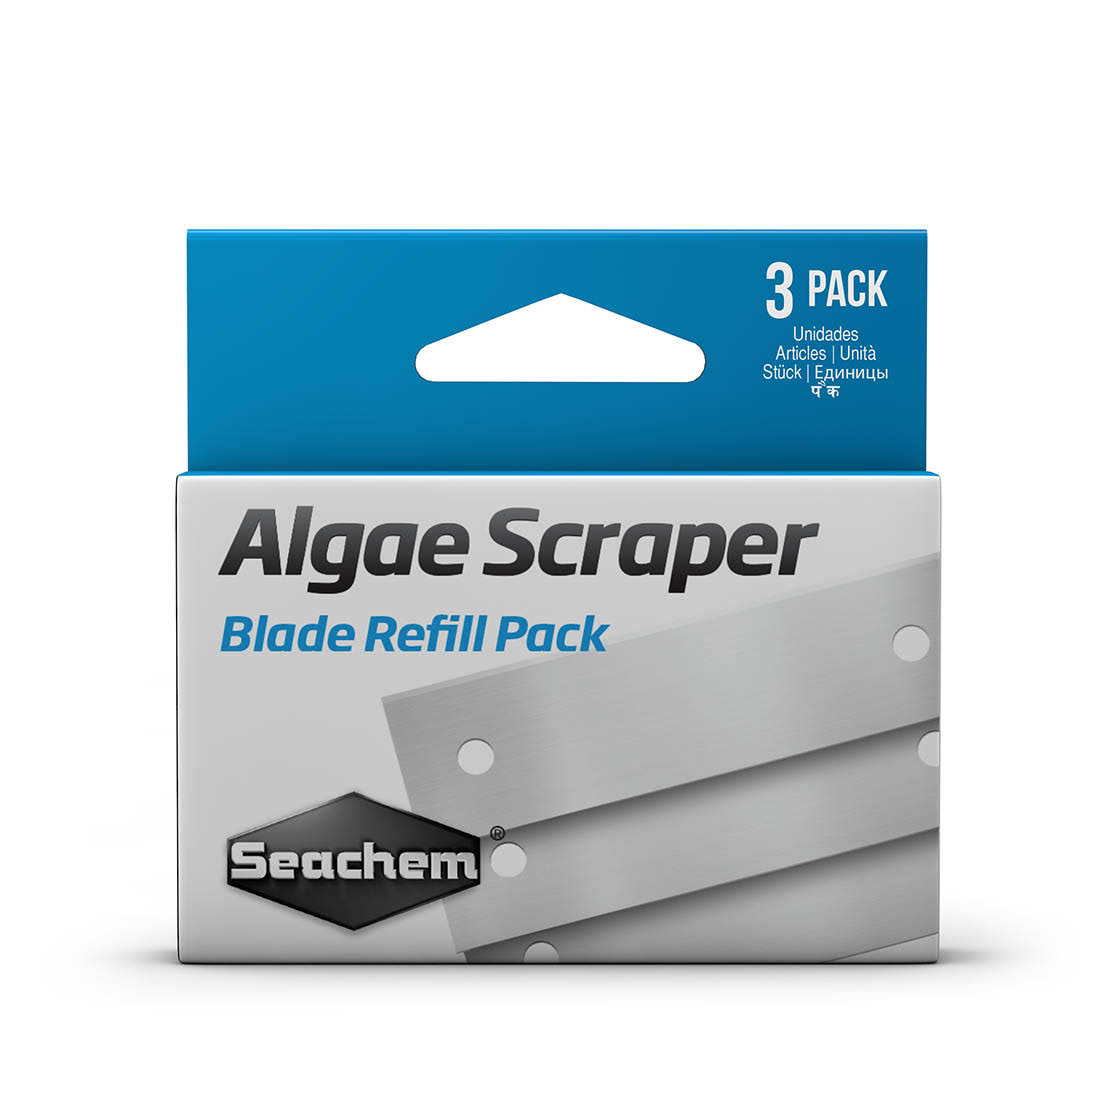 Seachem Algae Scraper Replacement Blades 3 Pack